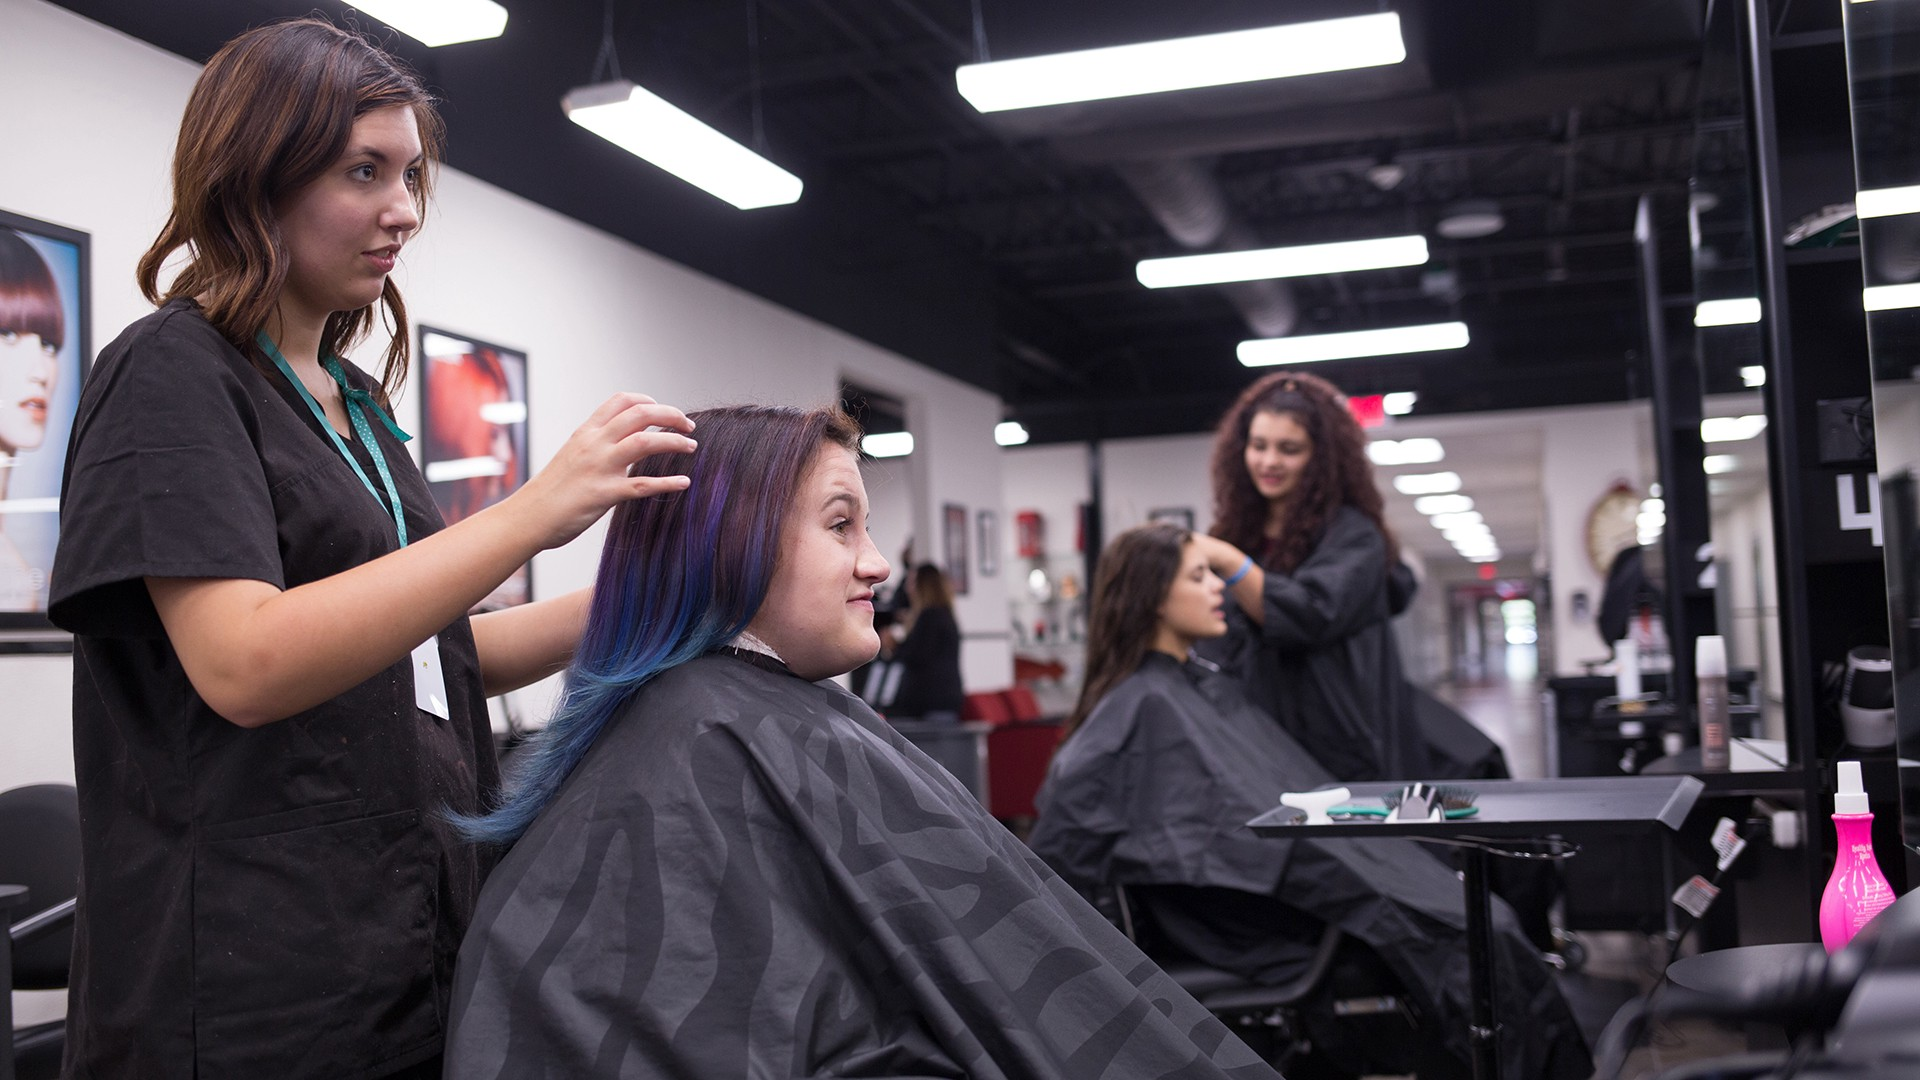 Shears Of Steele Offers Quality Affordable Haircuts From Students